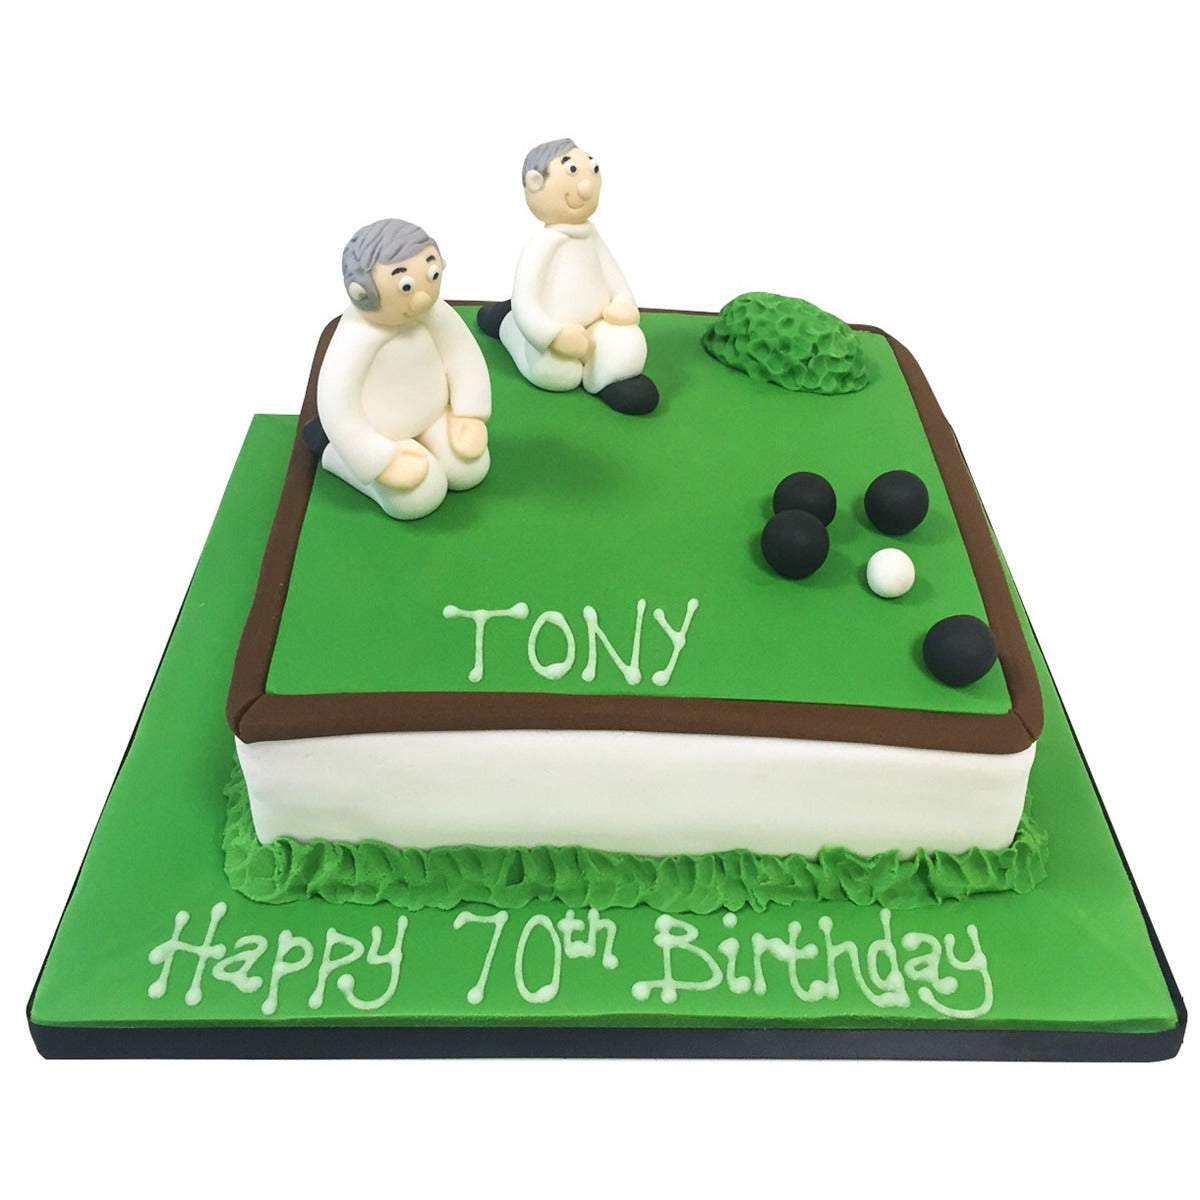 Groovy Tennis Cake Buy Online Free Uk Delivery New Cakes Personalised Birthday Cards Epsylily Jamesorg